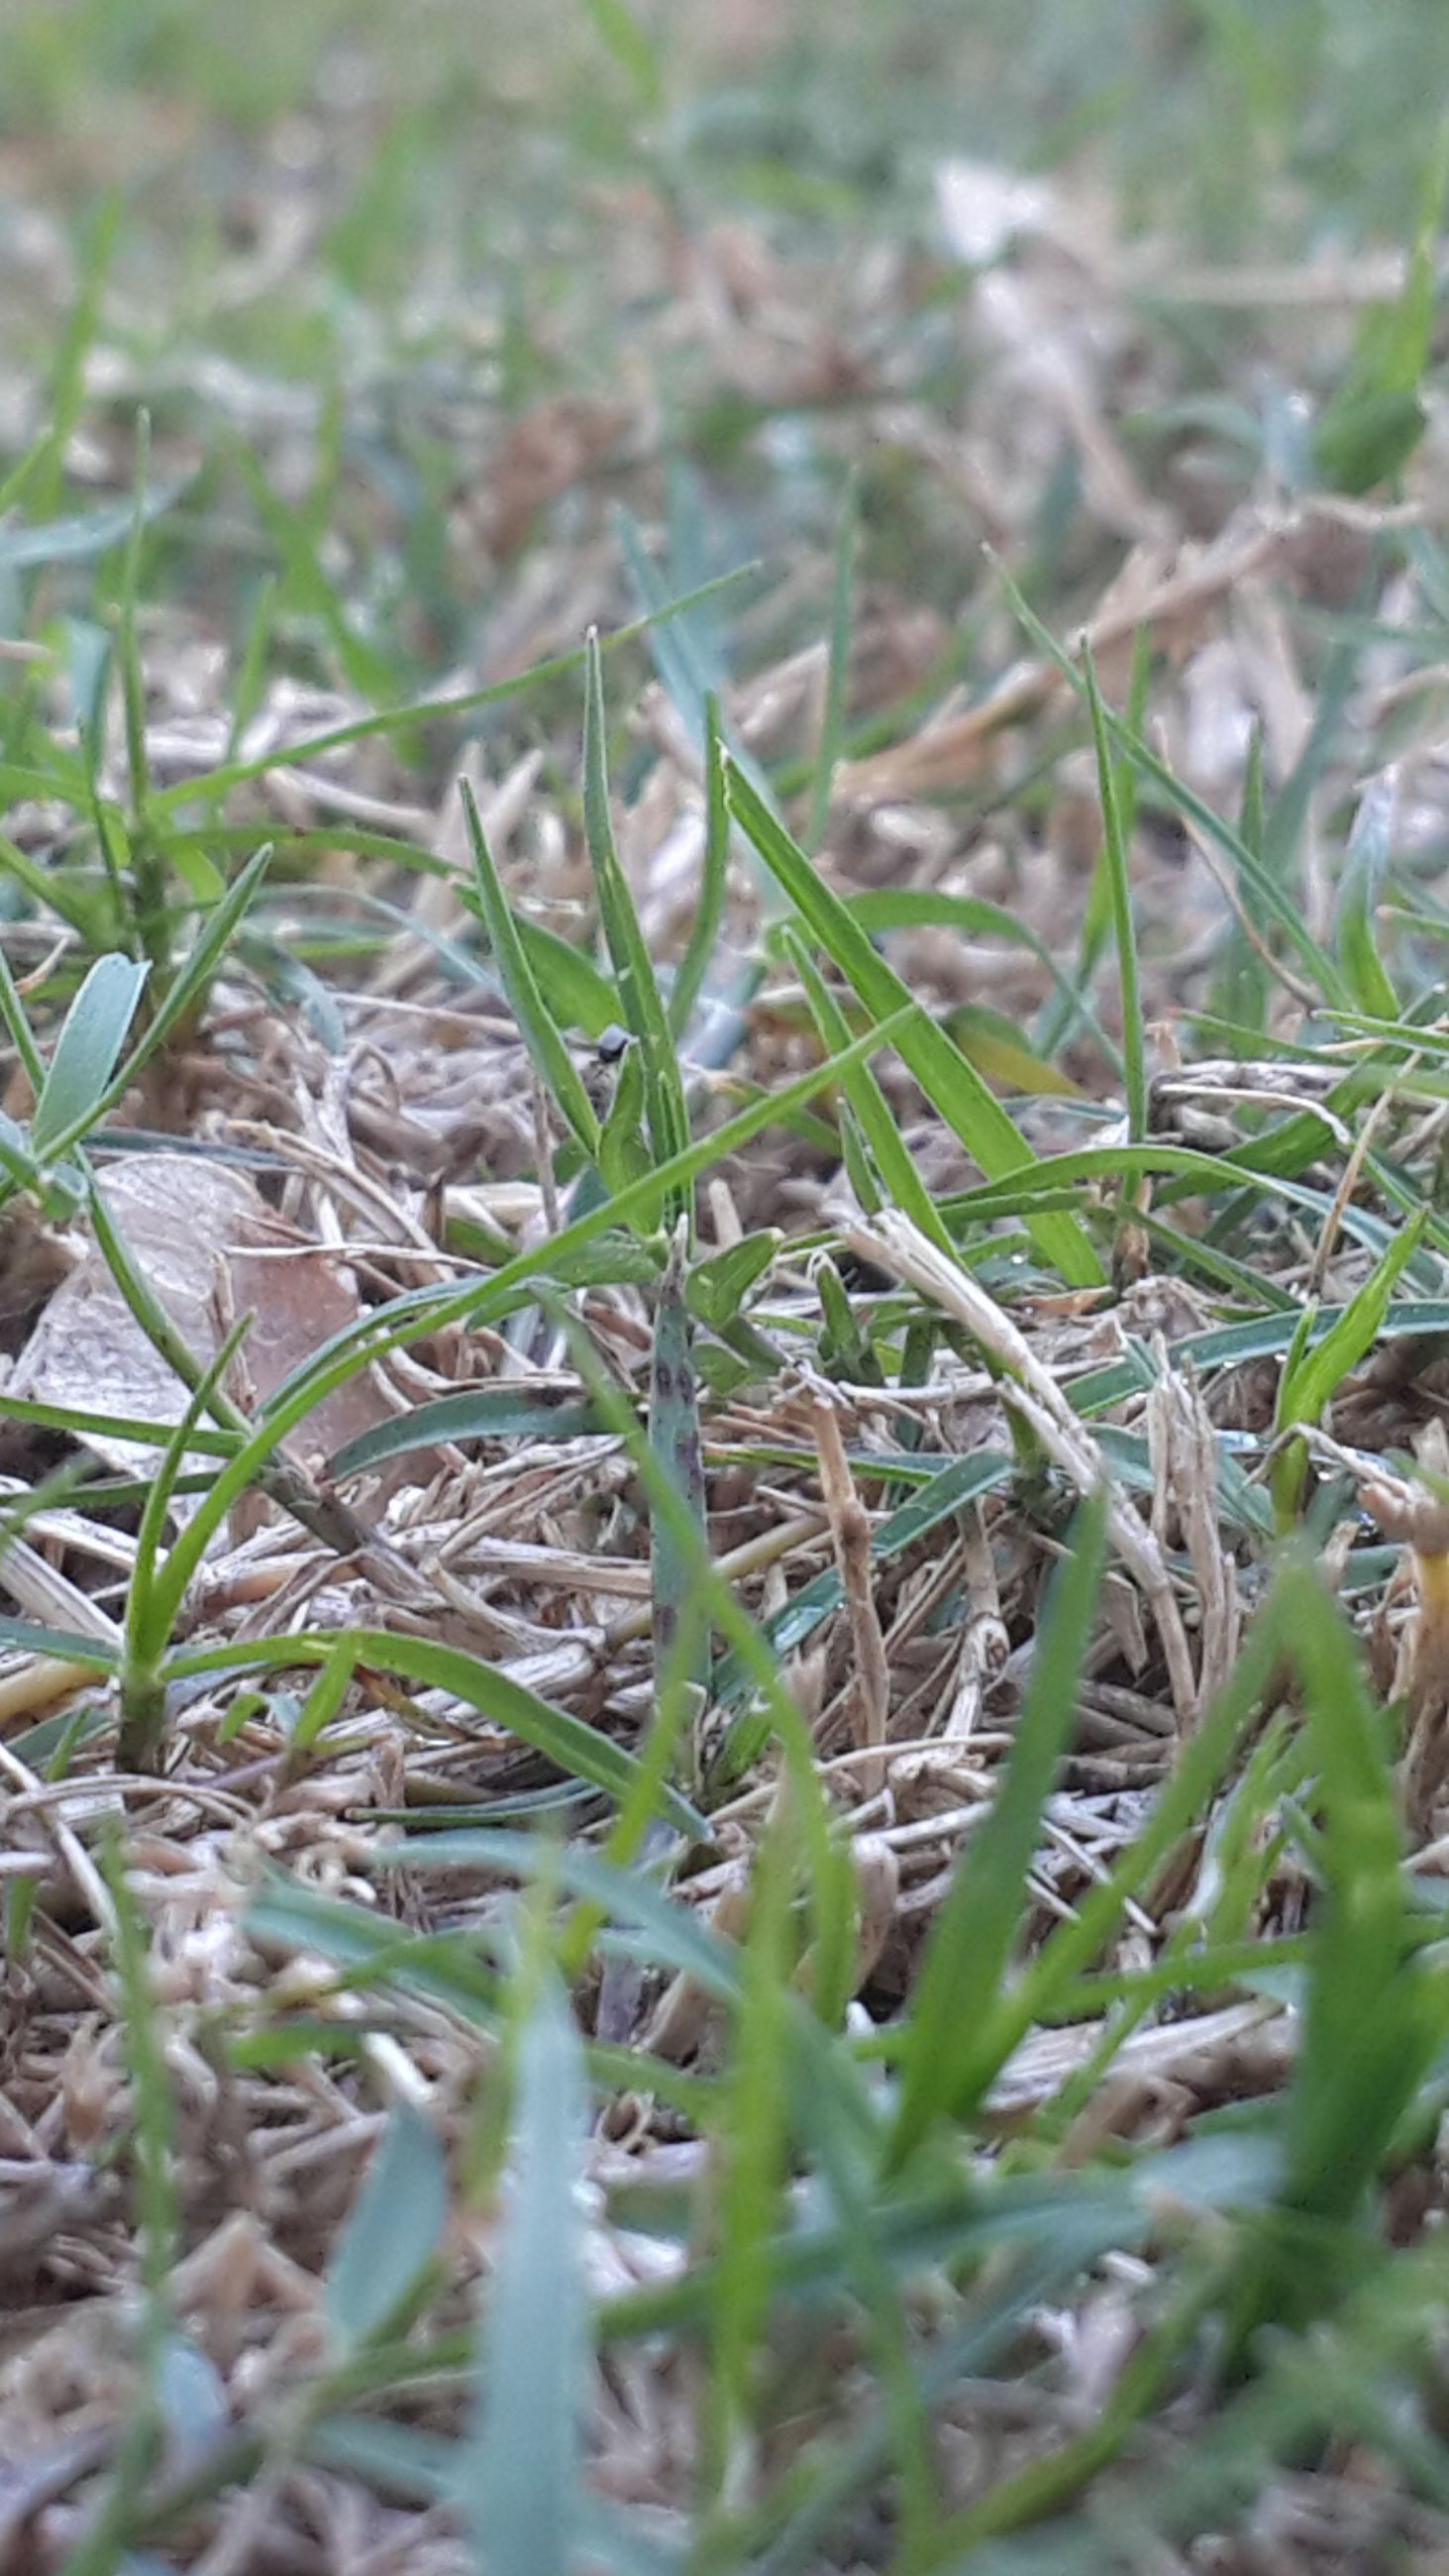 grass, field, growth, selective focus, nature, plant, close-up, green color, grassy, focus on foreground, blade of grass, day, beauty in nature, outdoors, tranquility, high angle view, no people, growing, surface level, leaf